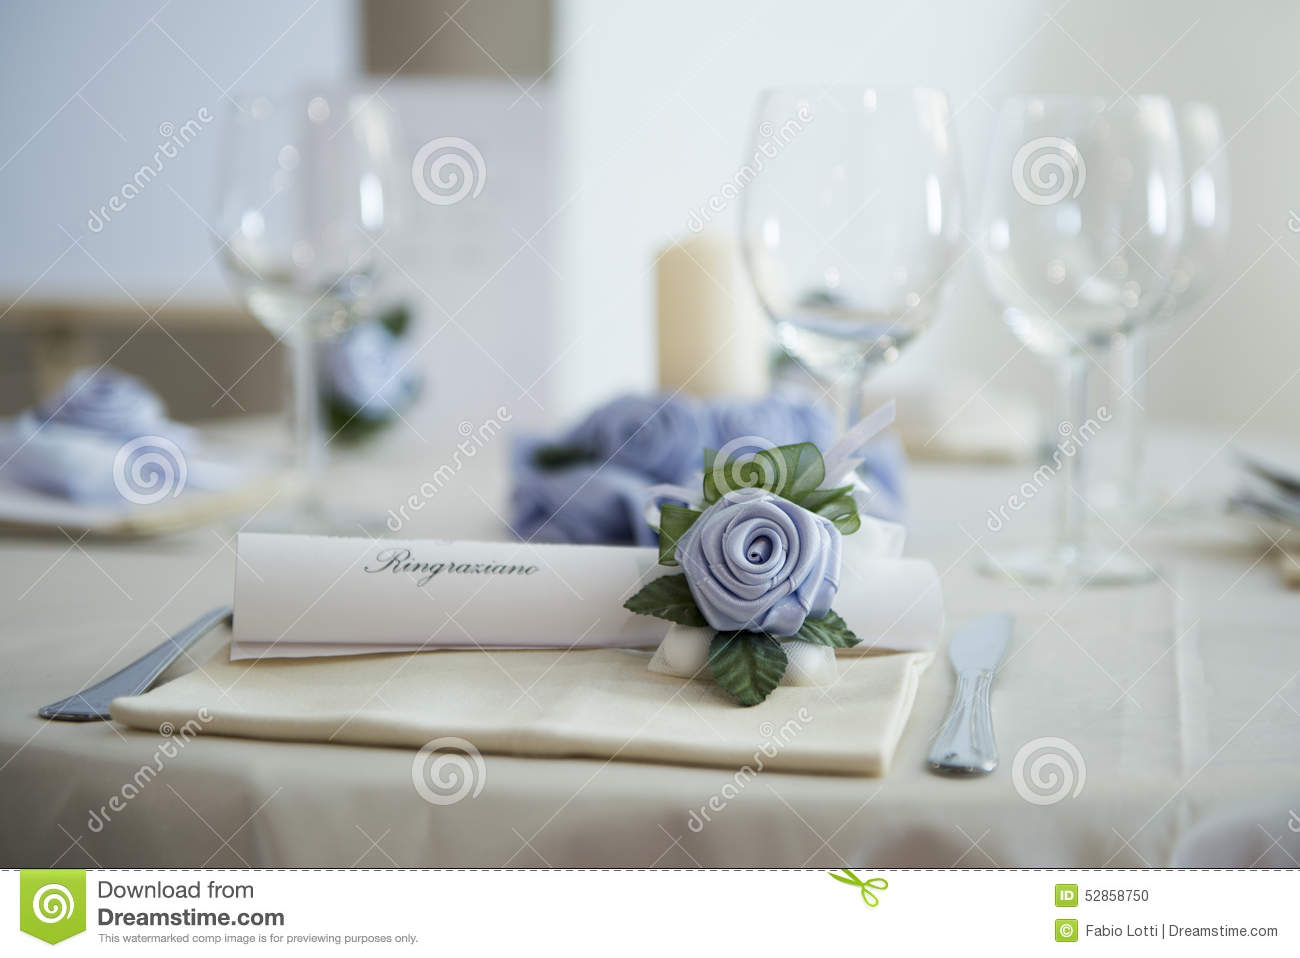 Decoration on a wedding table stock photo image 52858750 - Deco table rose ...